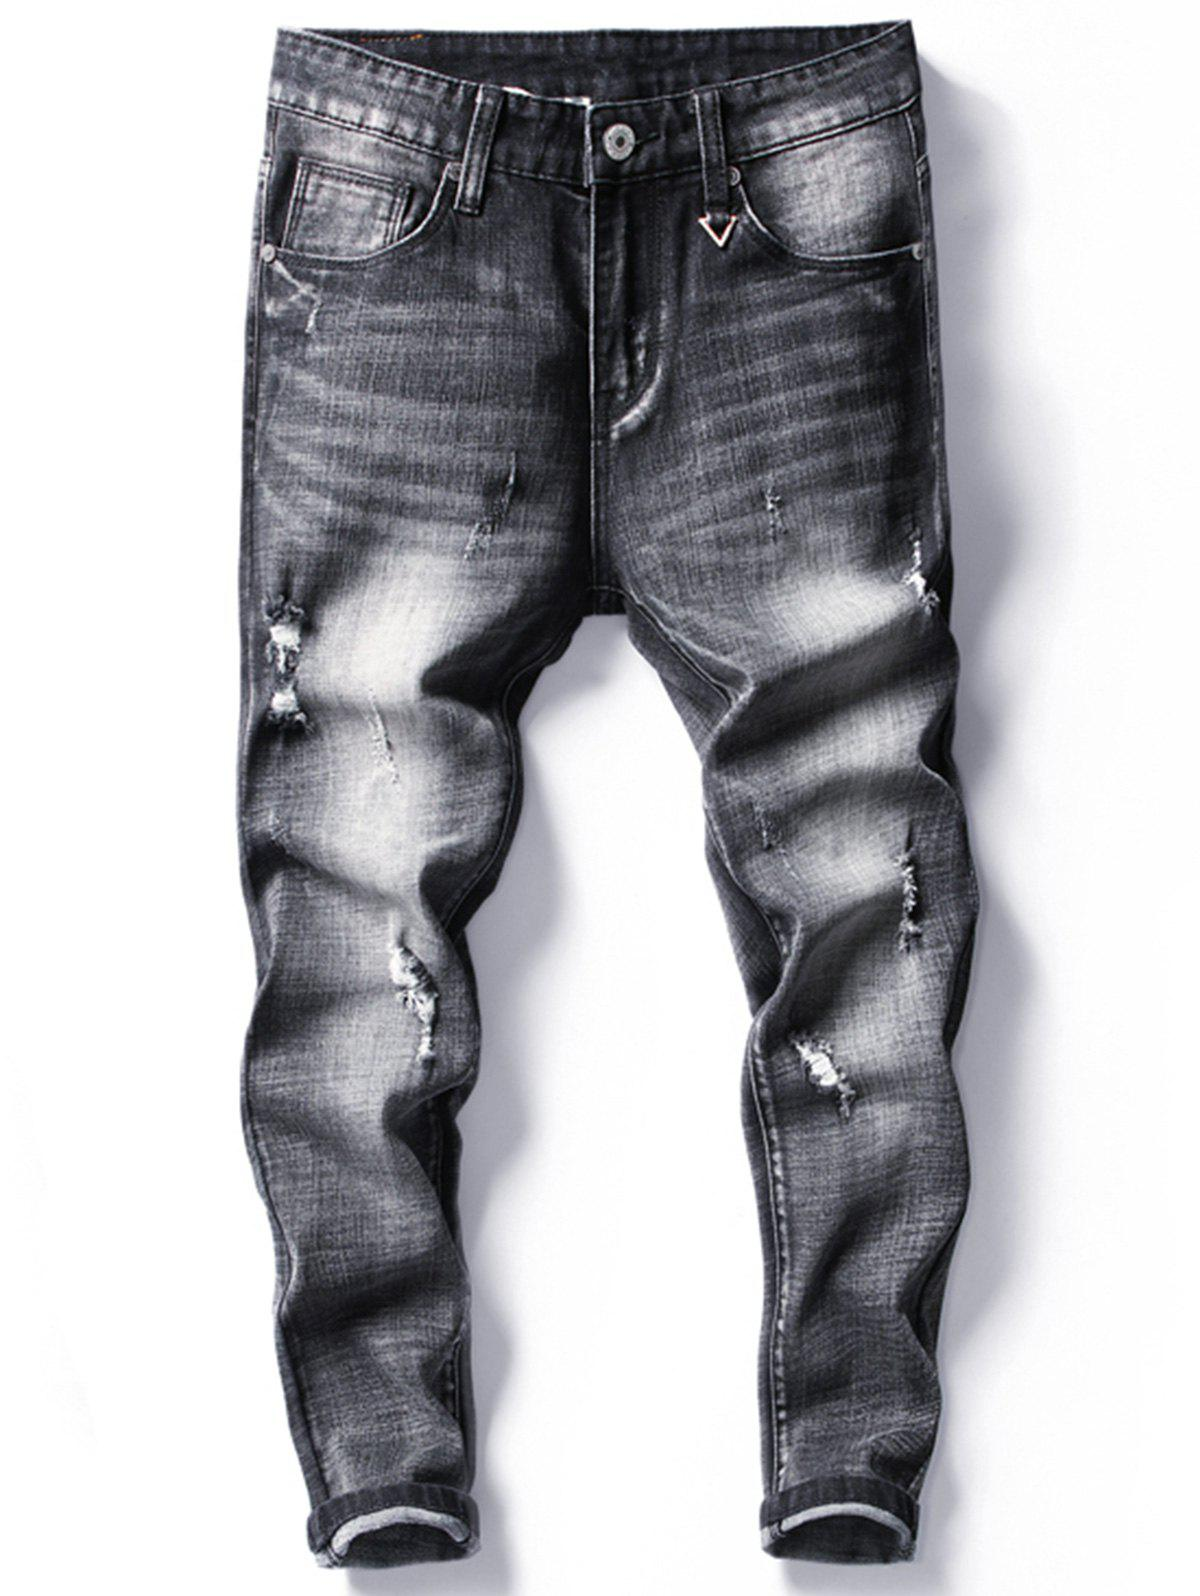 85eb4c0f 33% OFF] Tapered Fit Faded Ripped Jeans | Rosegal